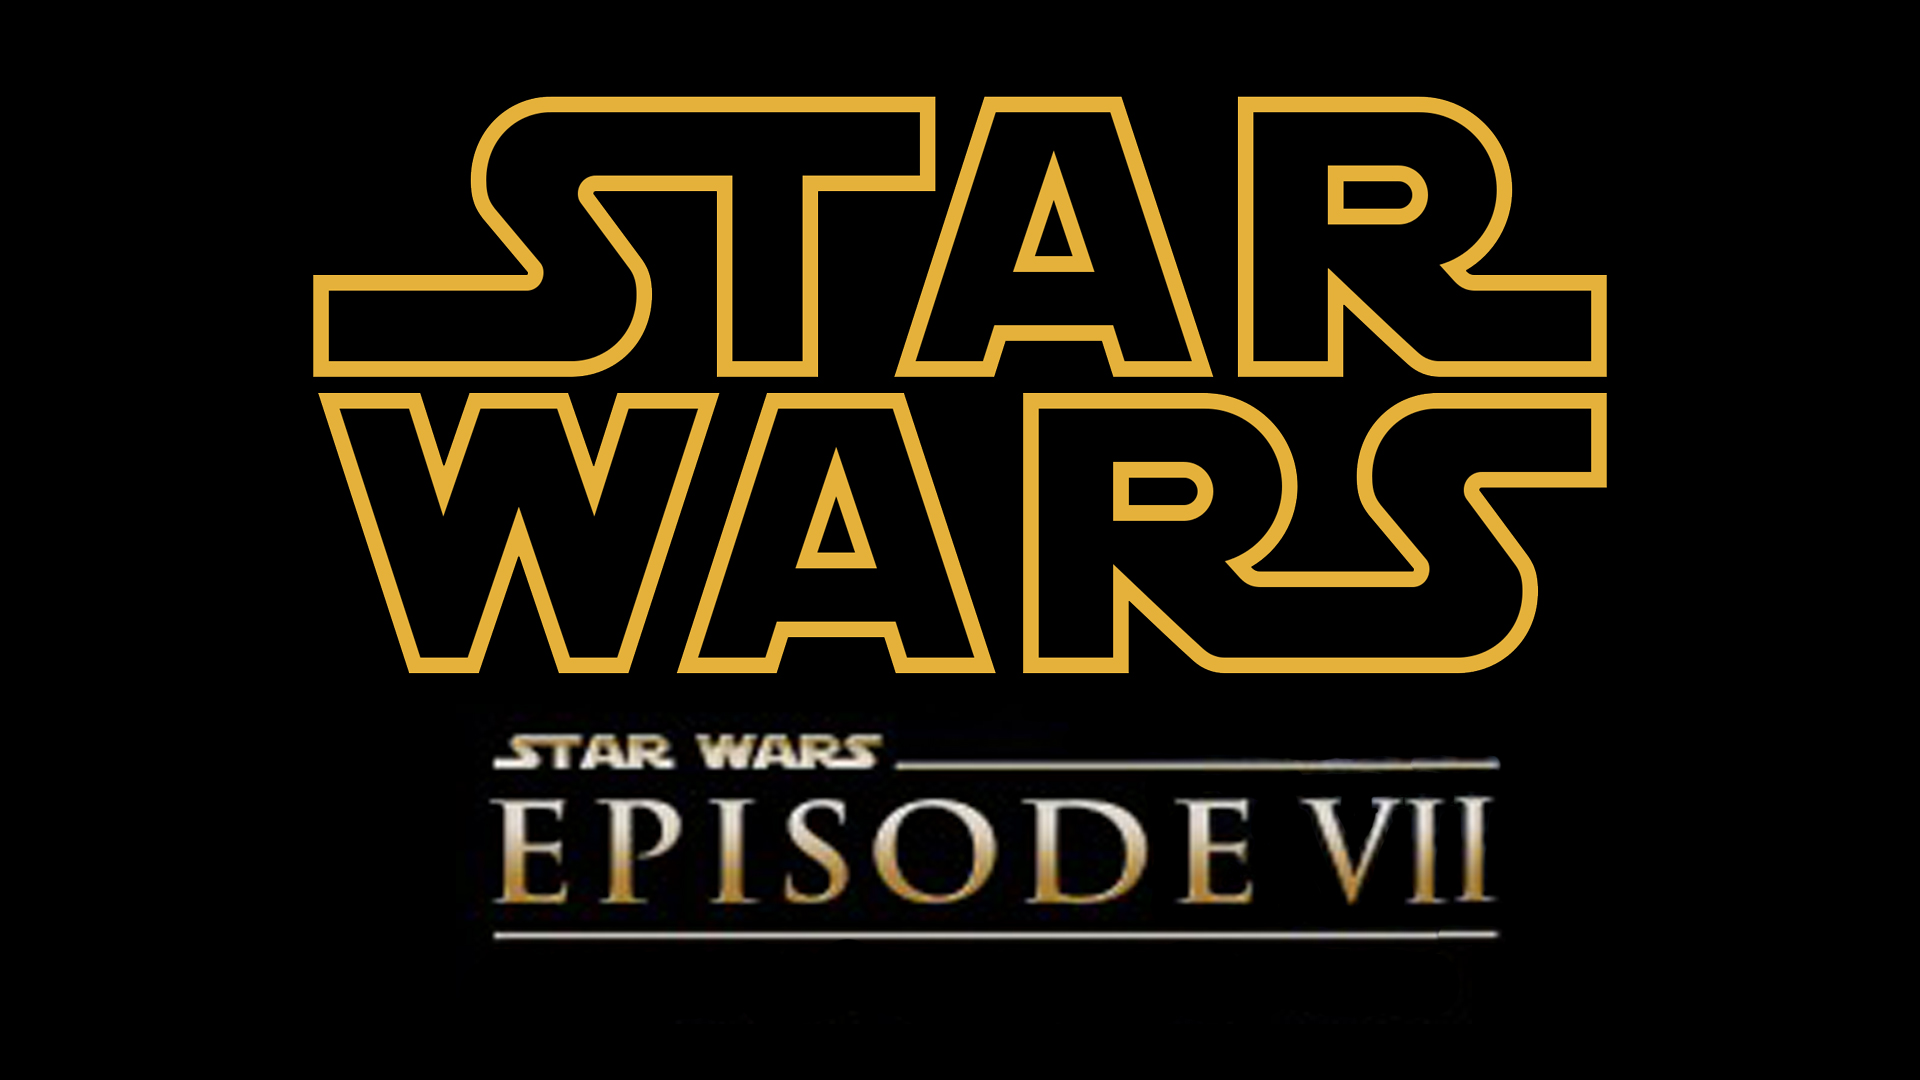 Star wars episodio 7 wallpapers